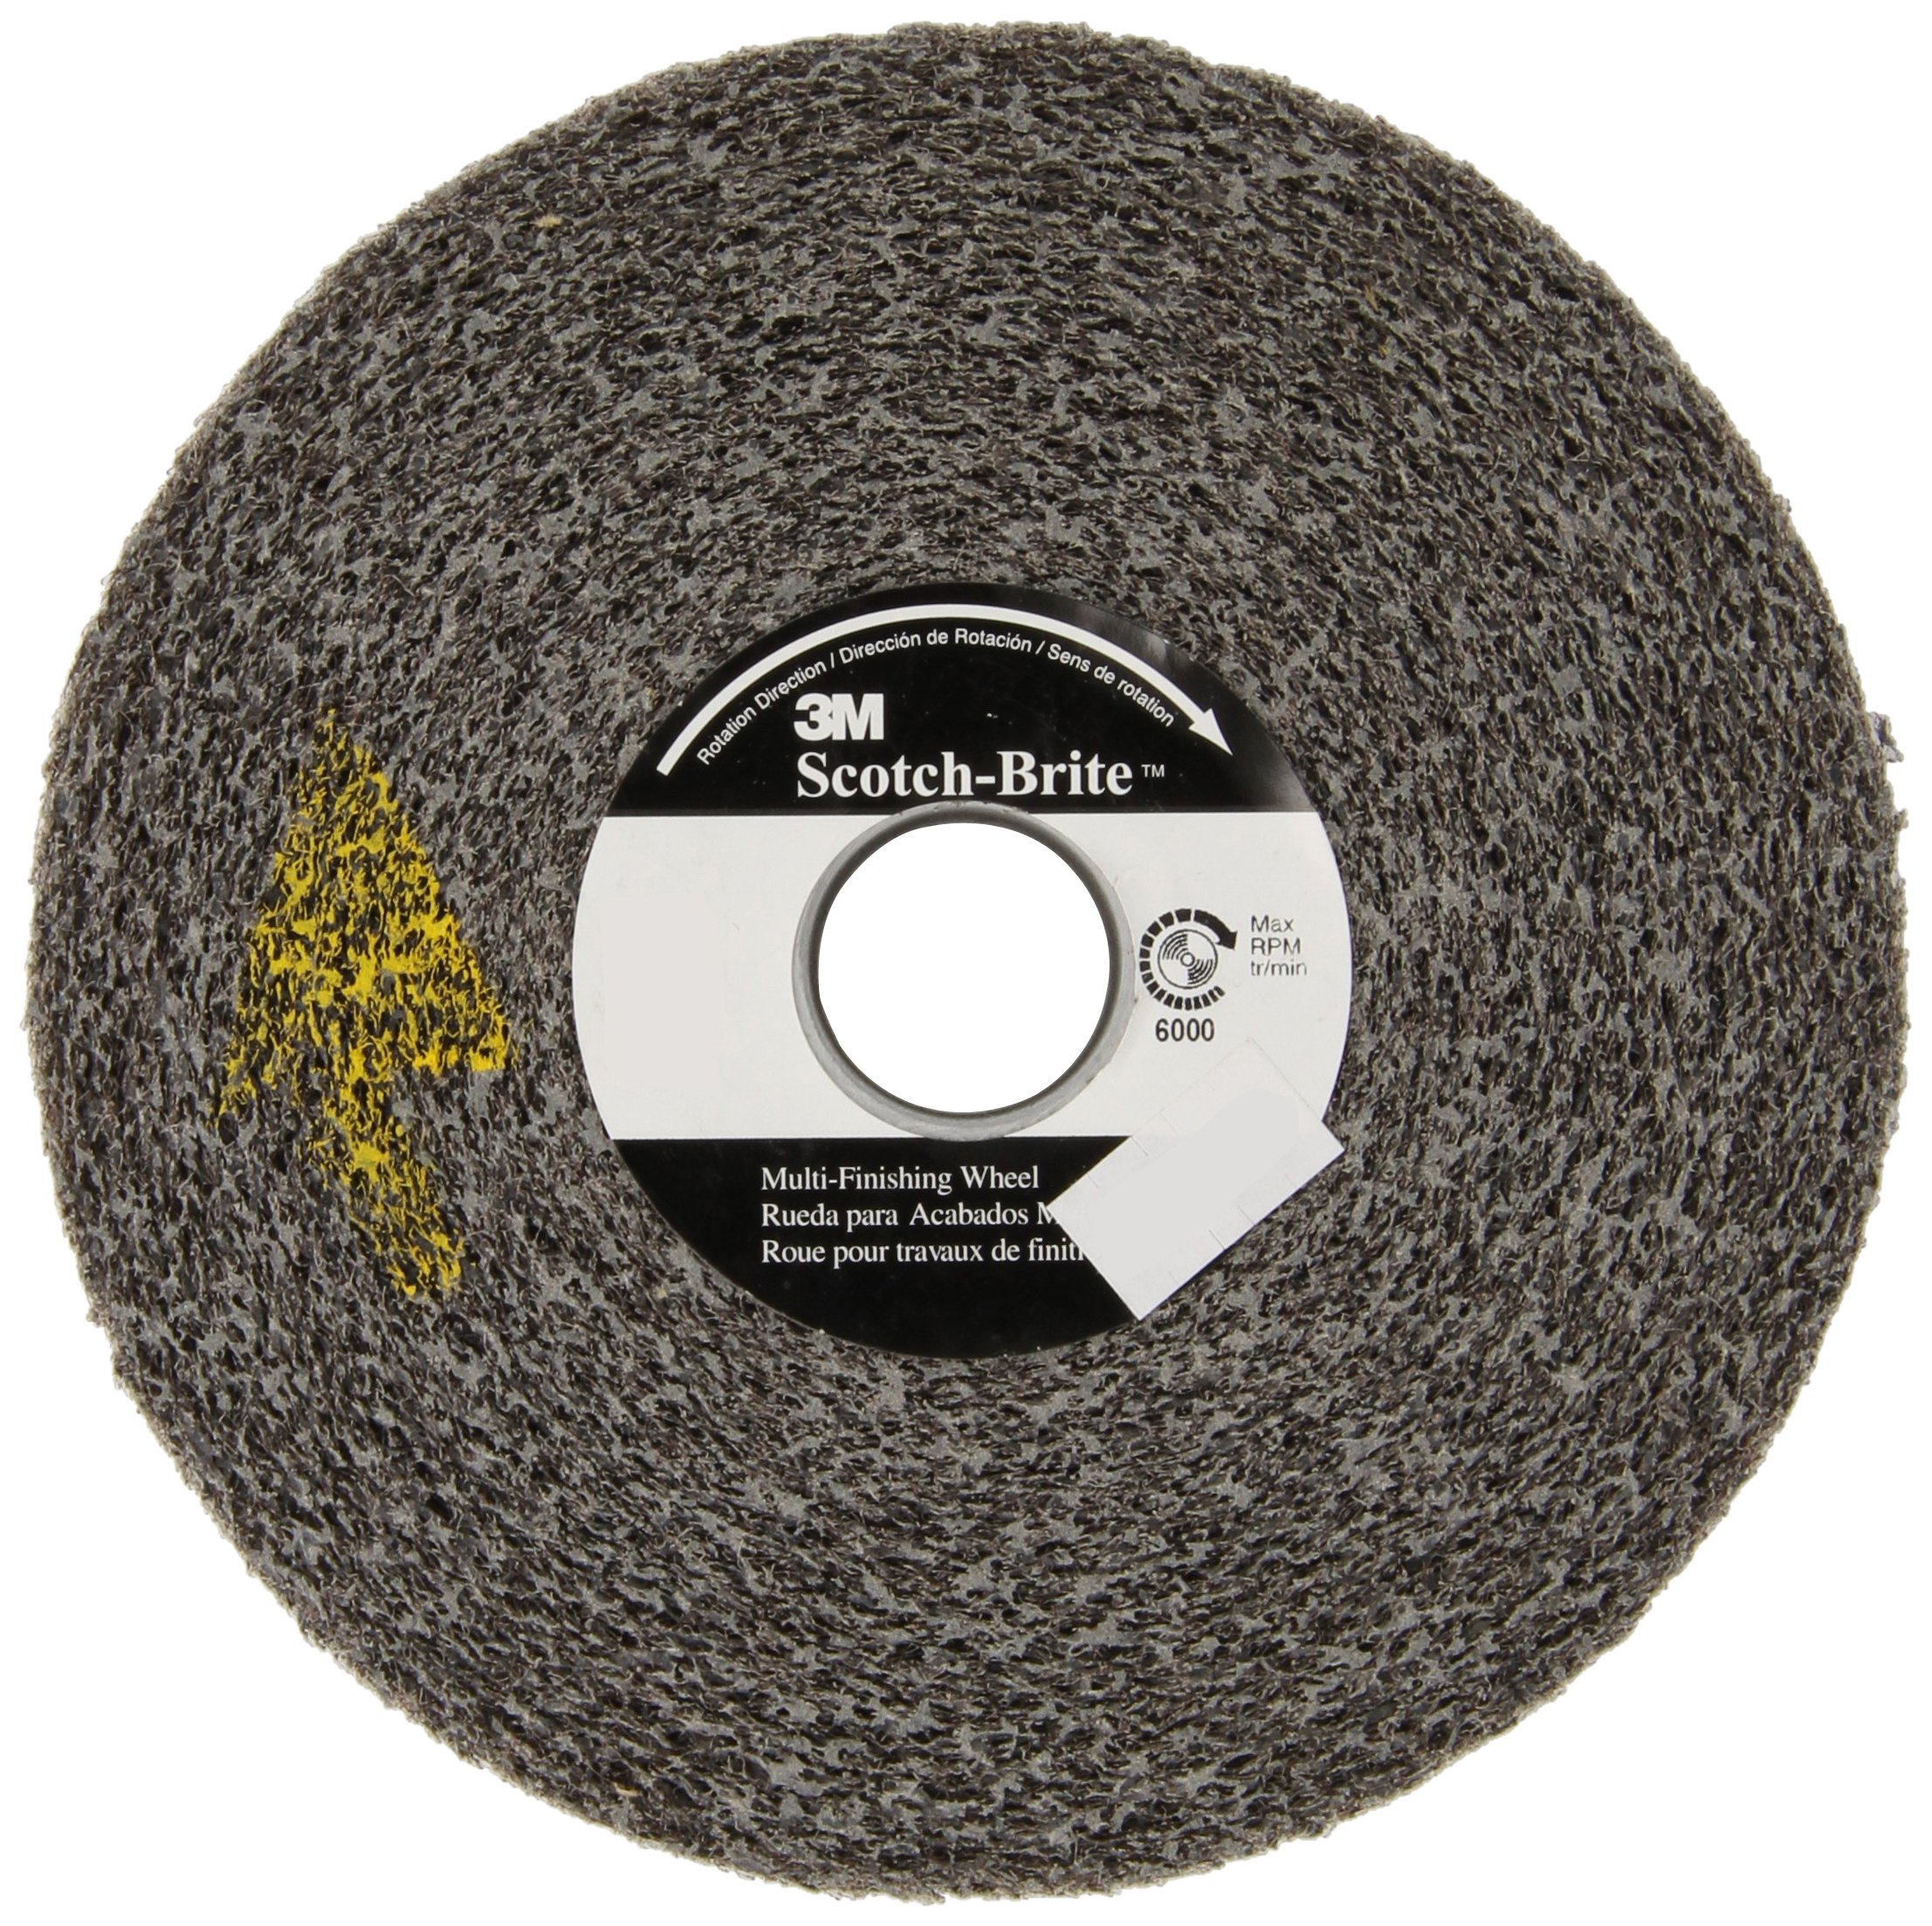 Scotch-Brite(TM) Multi-Finishing Wheel, Silicon Carbide, 6000 rpm, 6 Diameter x 3 Width, 1 Arbor, 2S Medium Grit (Pack of 1)